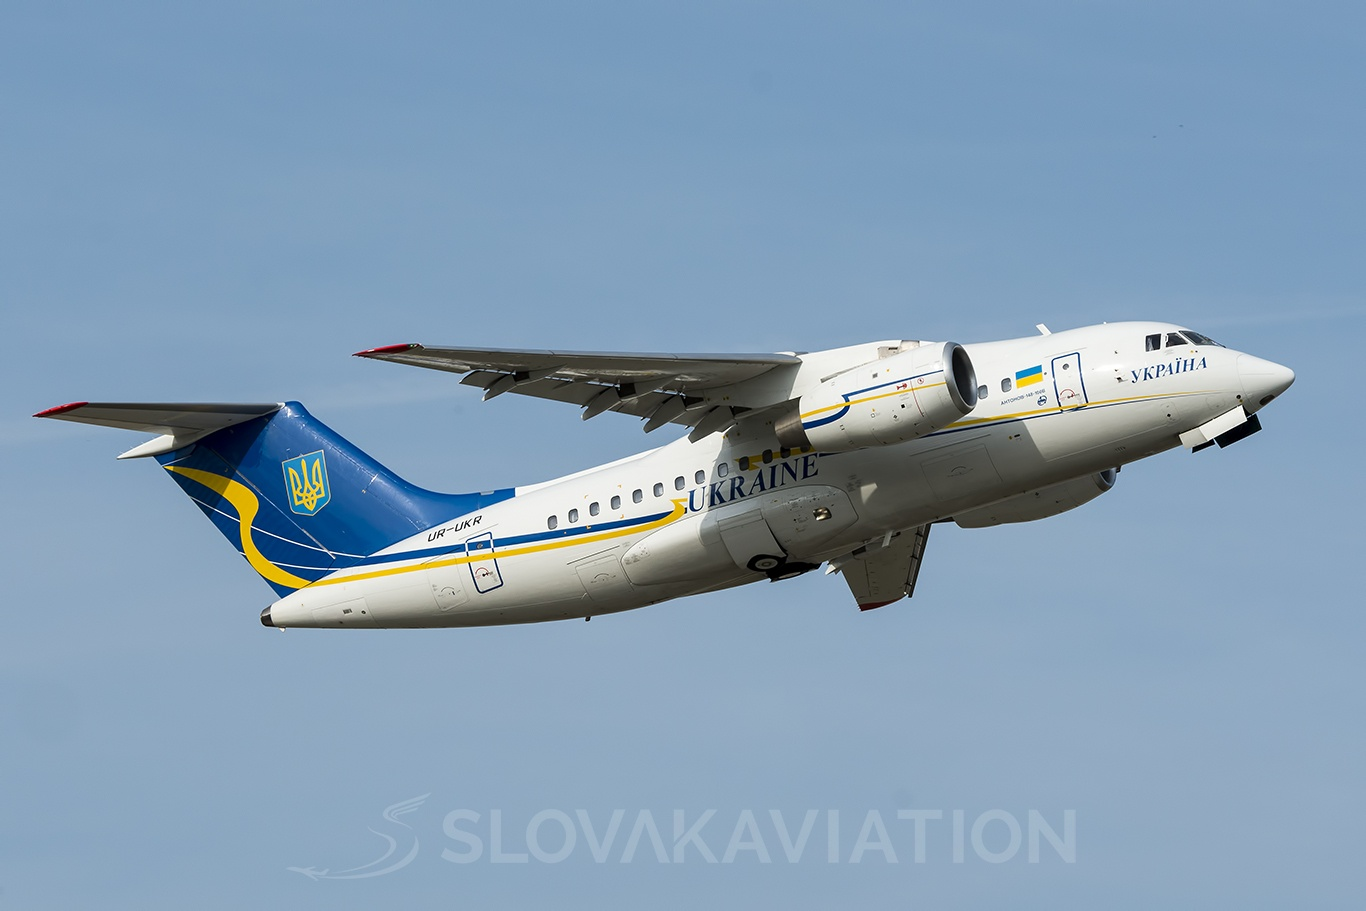 Ukraine Government Antonov An-148/158 UR-UKR